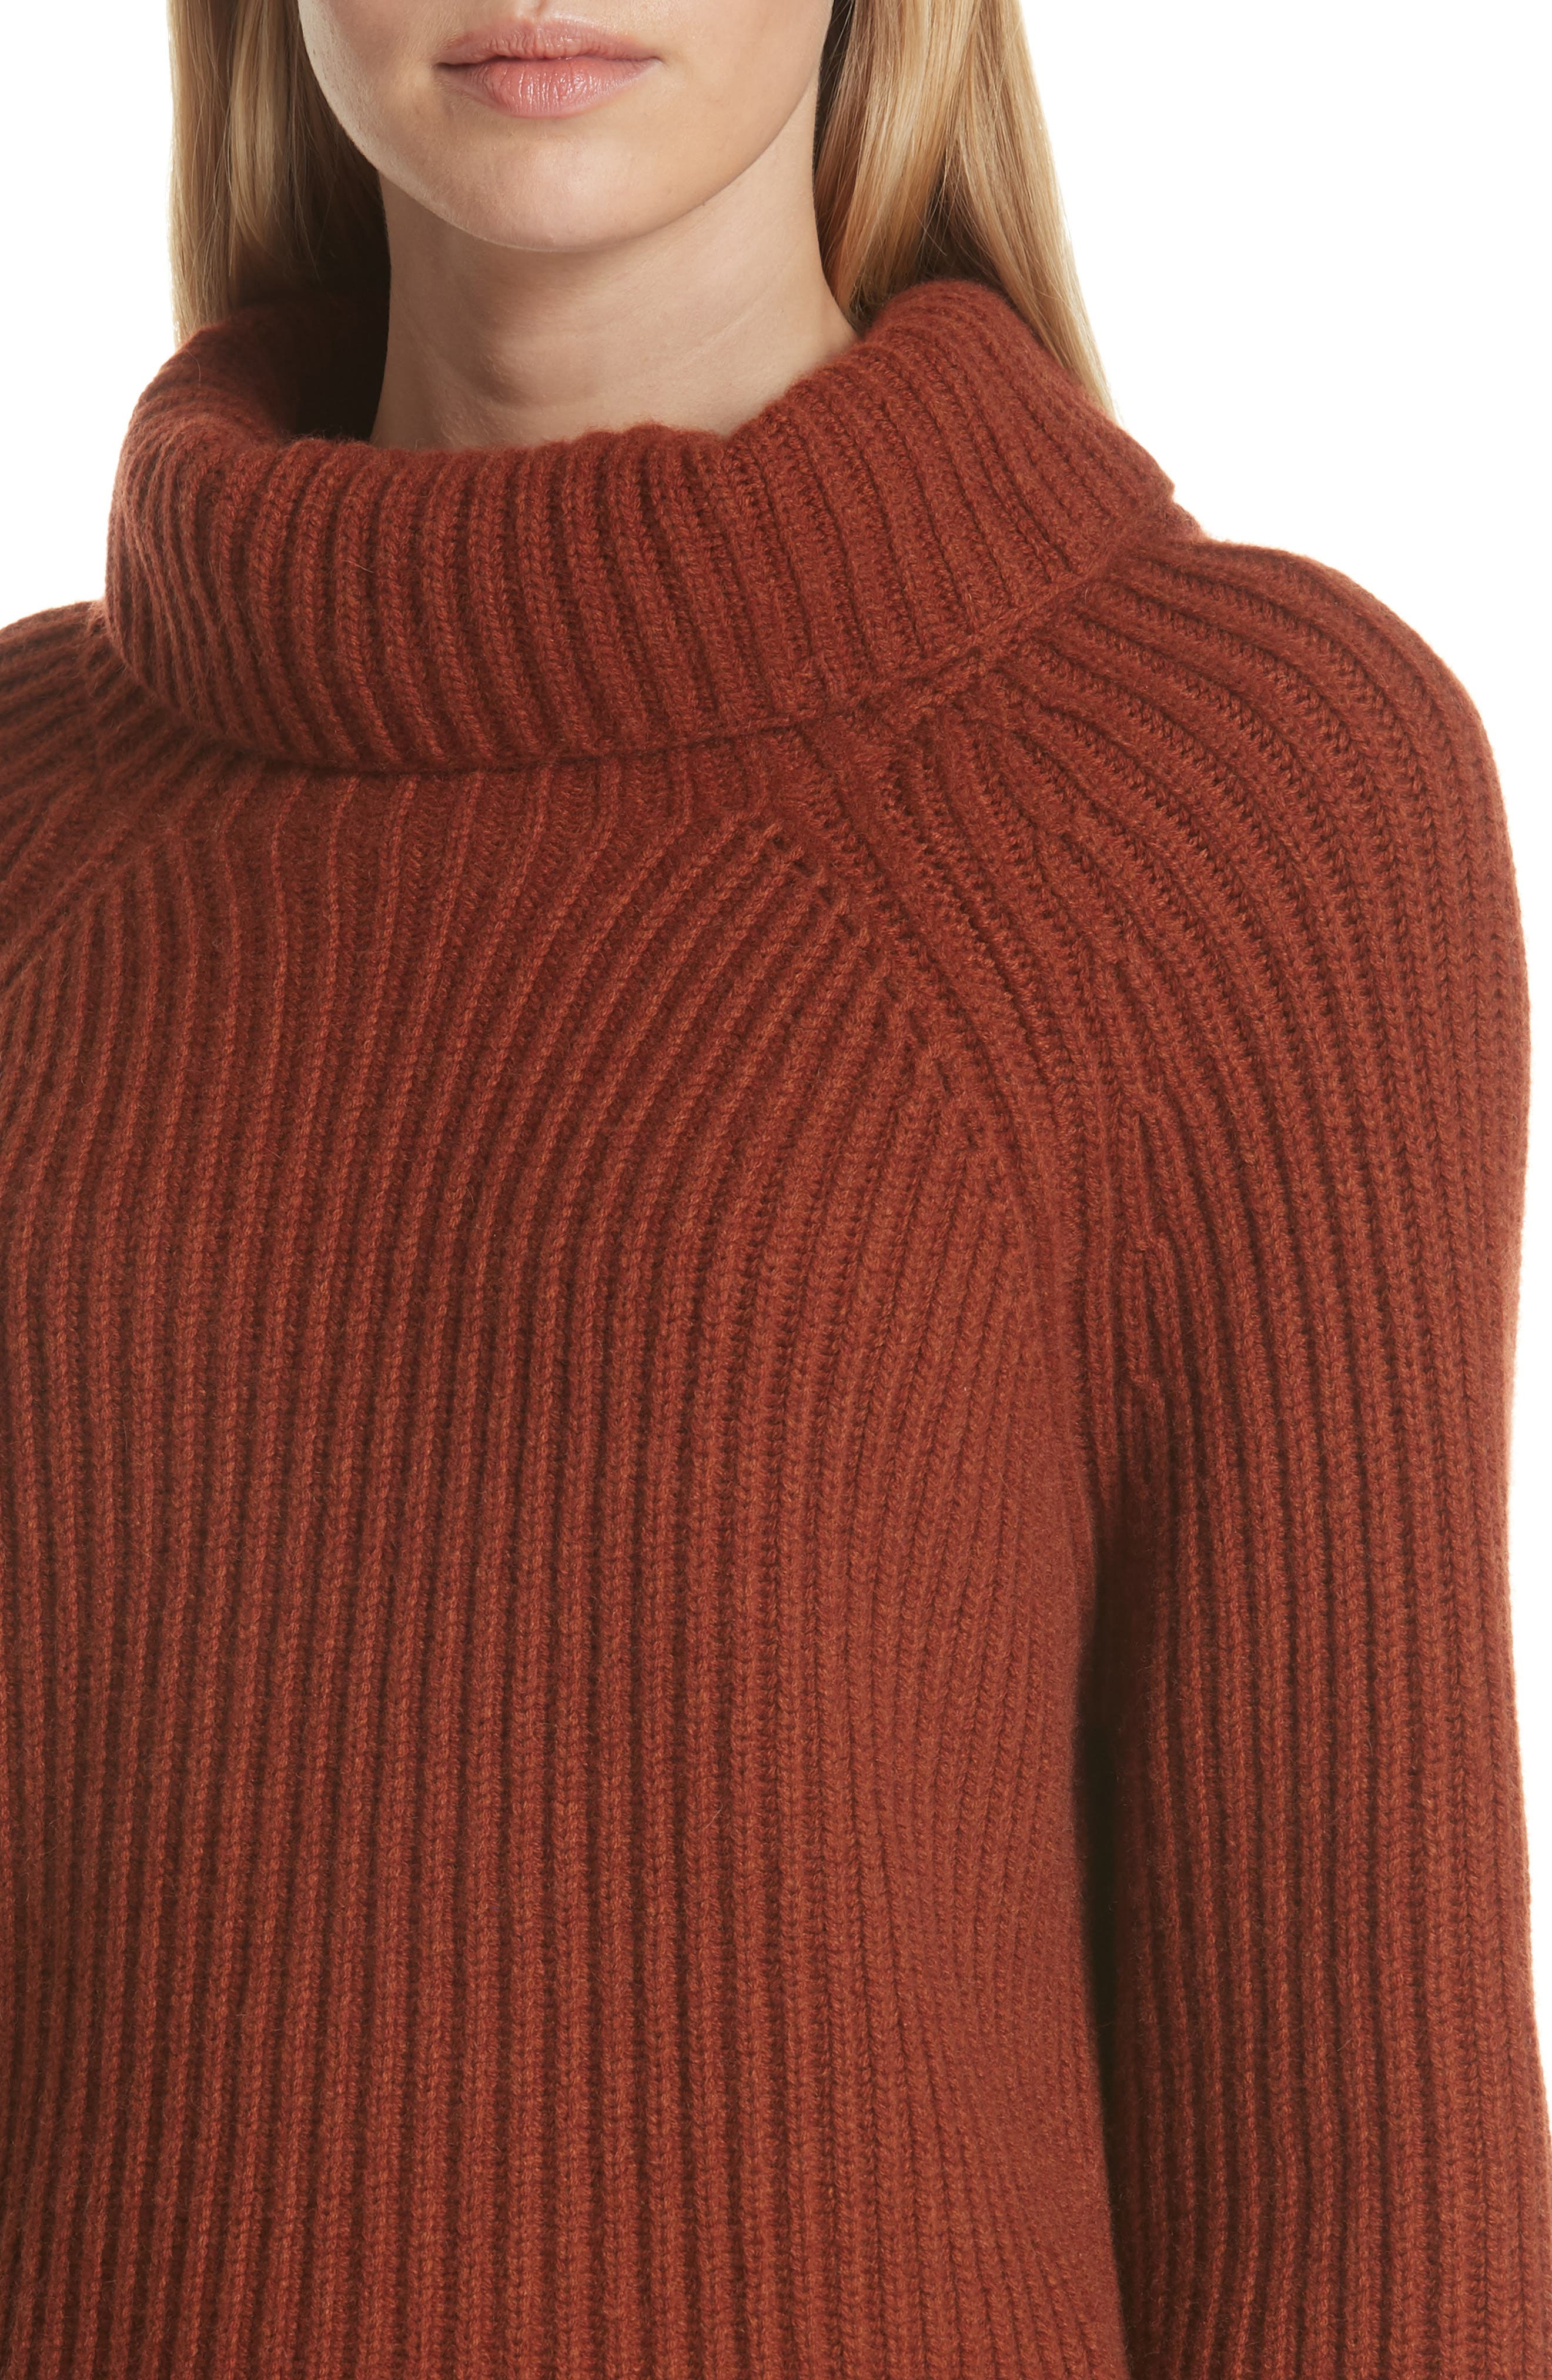 Ribbed Cashmere Turtleneck Sweater,                             Alternate thumbnail 4, color,                             221